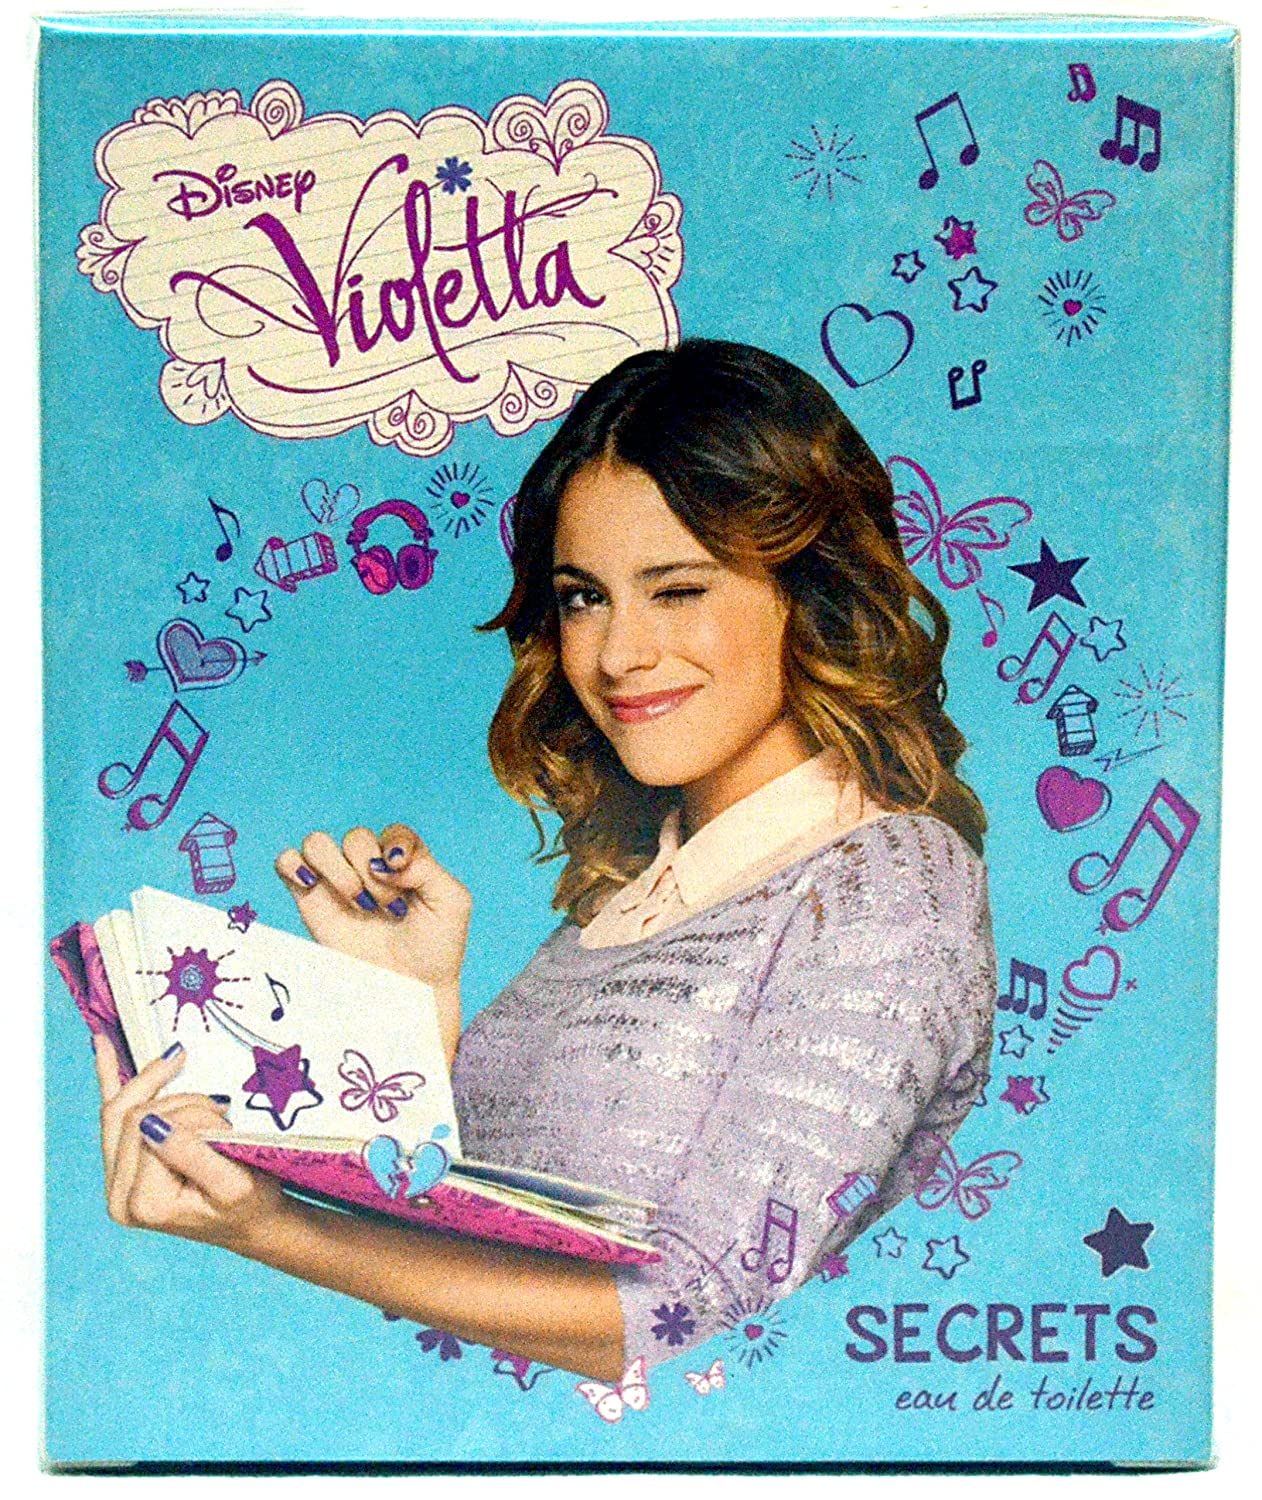 Amazon.com: Disney Violetta Costume Dress Vestido - Original + 1 Violetta Perfume (1.7 Oz): Clothing